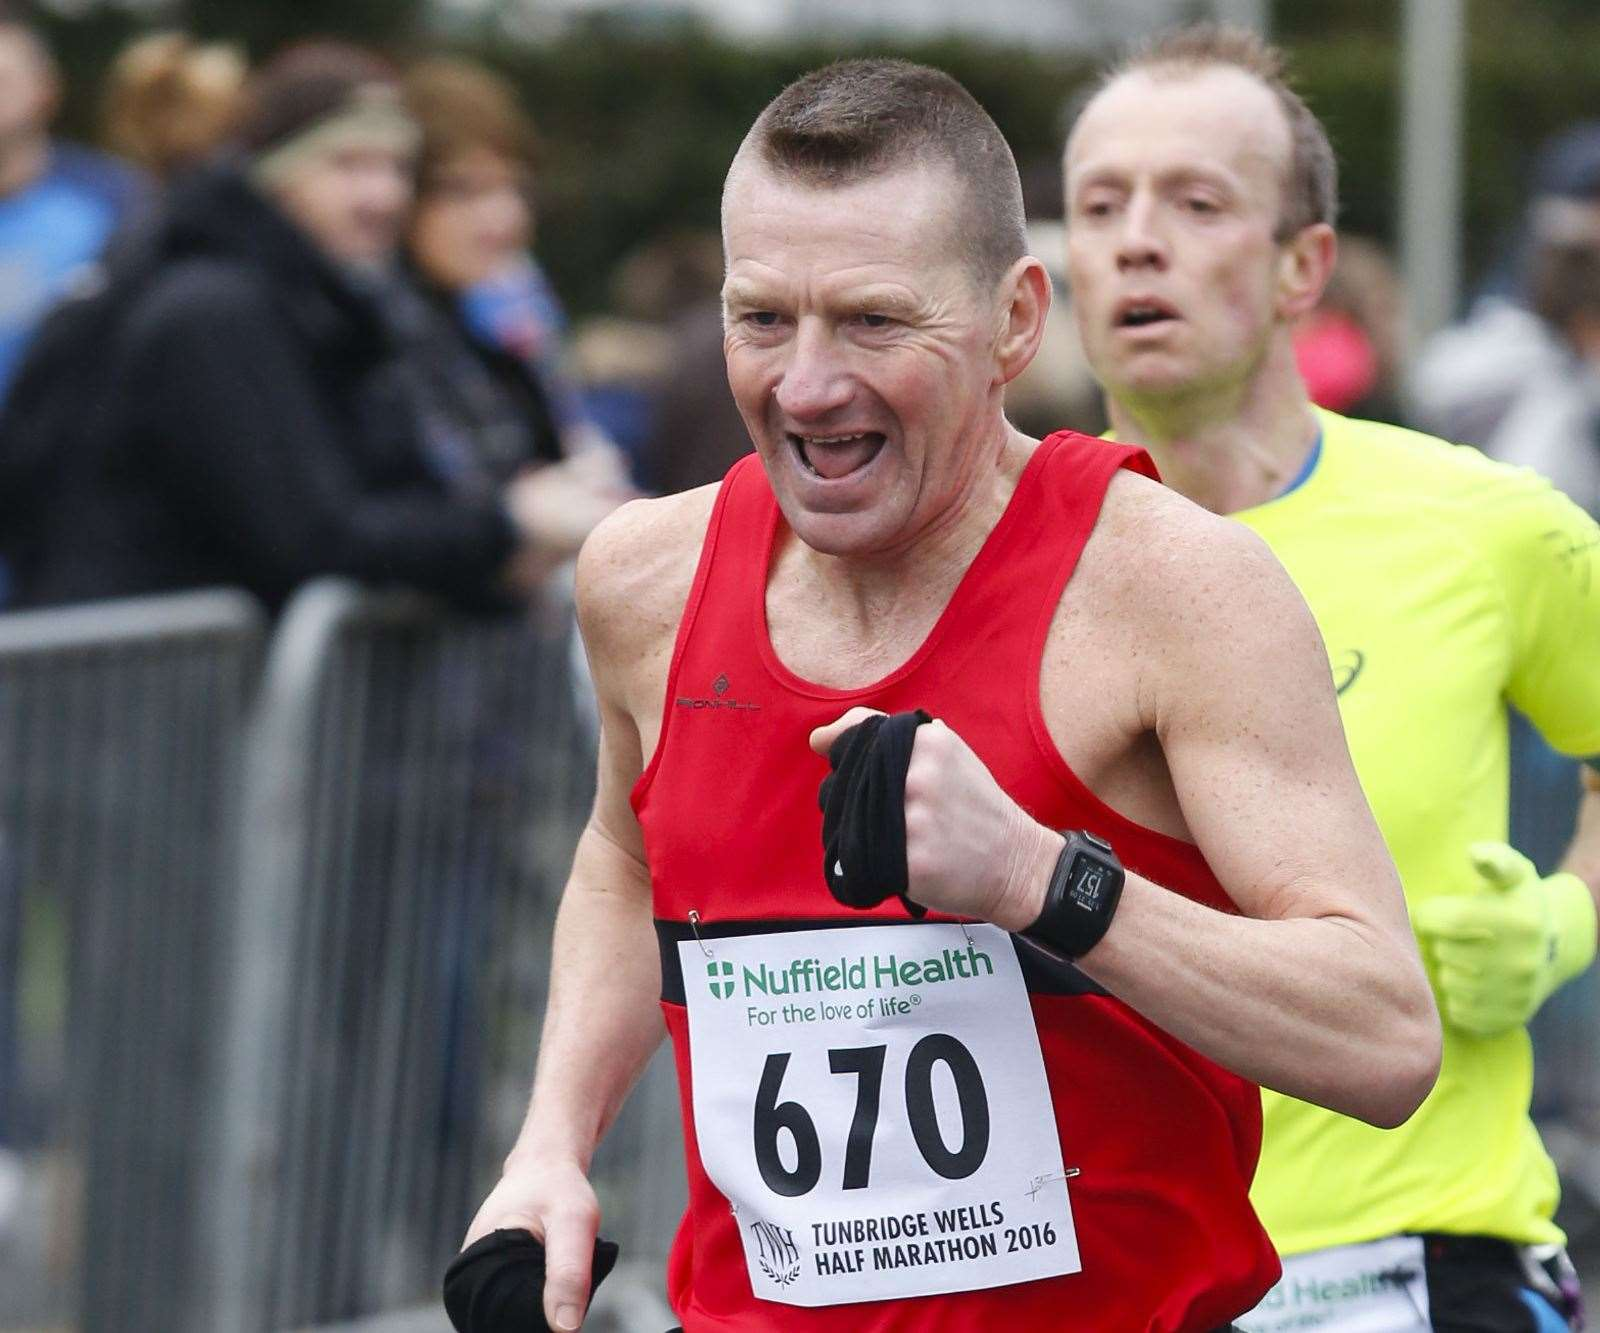 Medway & Maidstone AC's Bob Fursey had his best result yet